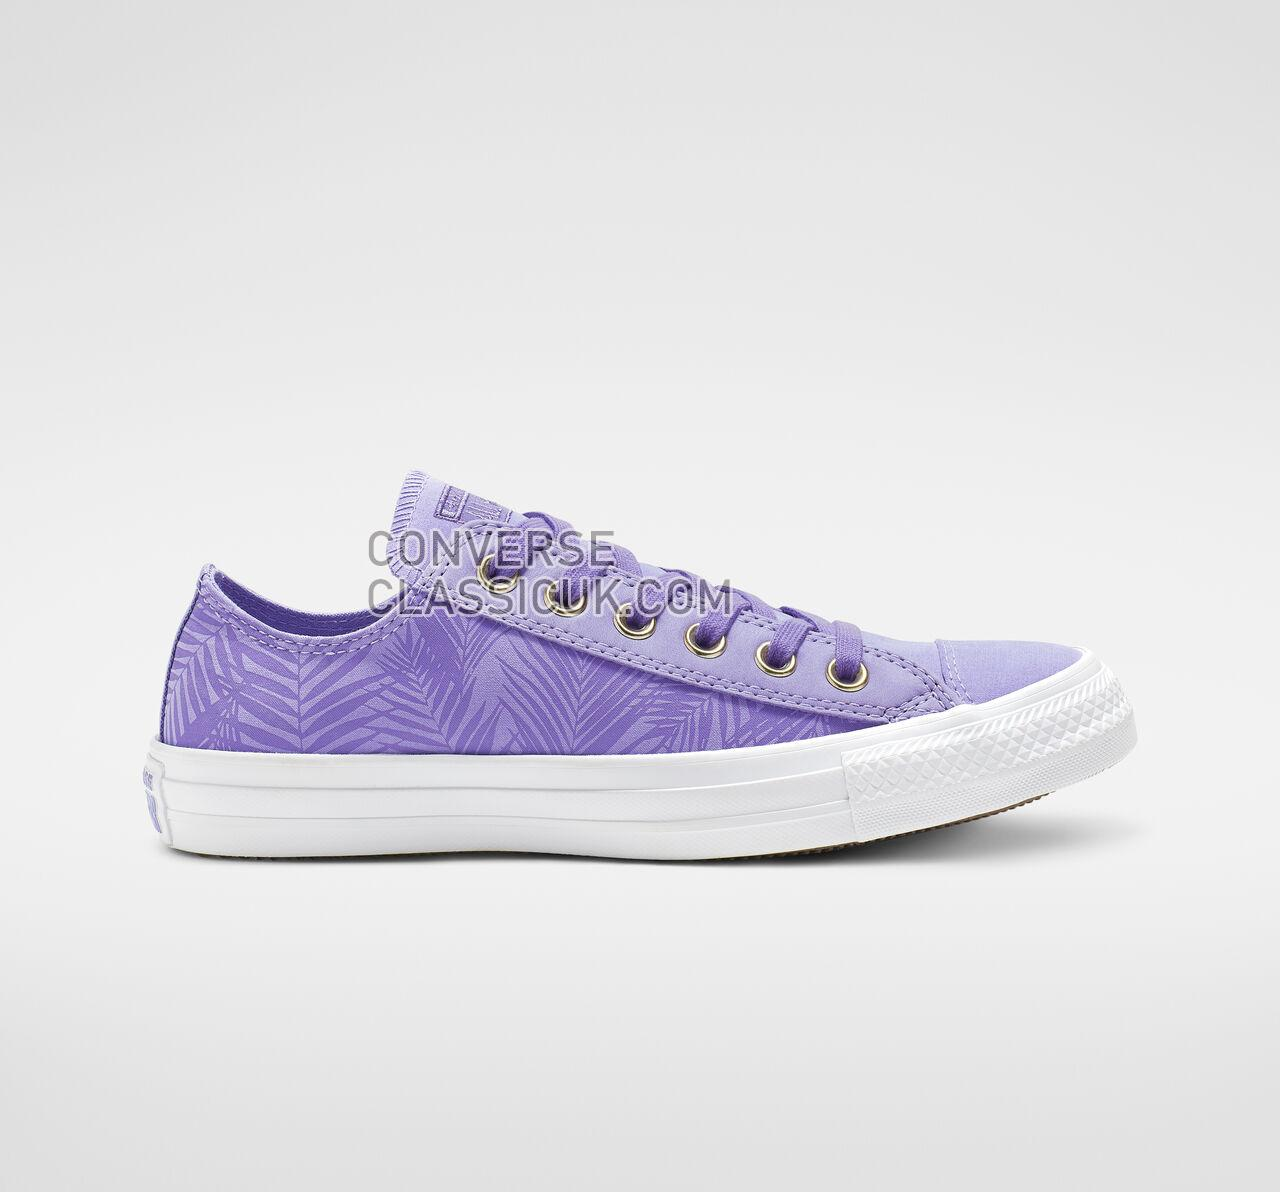 Converse Chuck Taylor All Star Summer Palms Low Top Womens 564114F Wild Lilac/Antique Brass/White Shoes